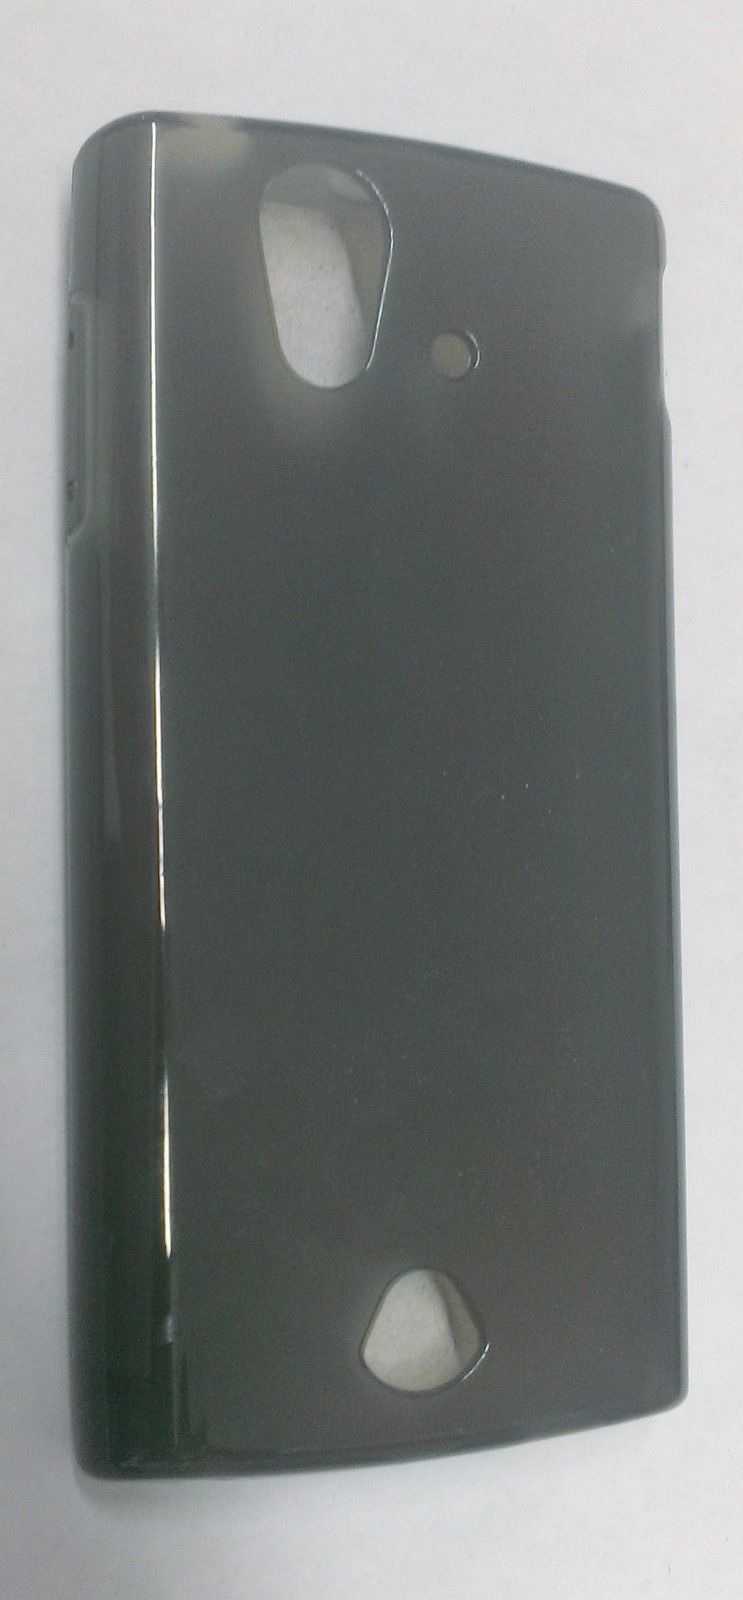 New Clear TPU Gel Skin Cover Soft Case for Sony Xperia Ray ST18A - Smoke Black image 2